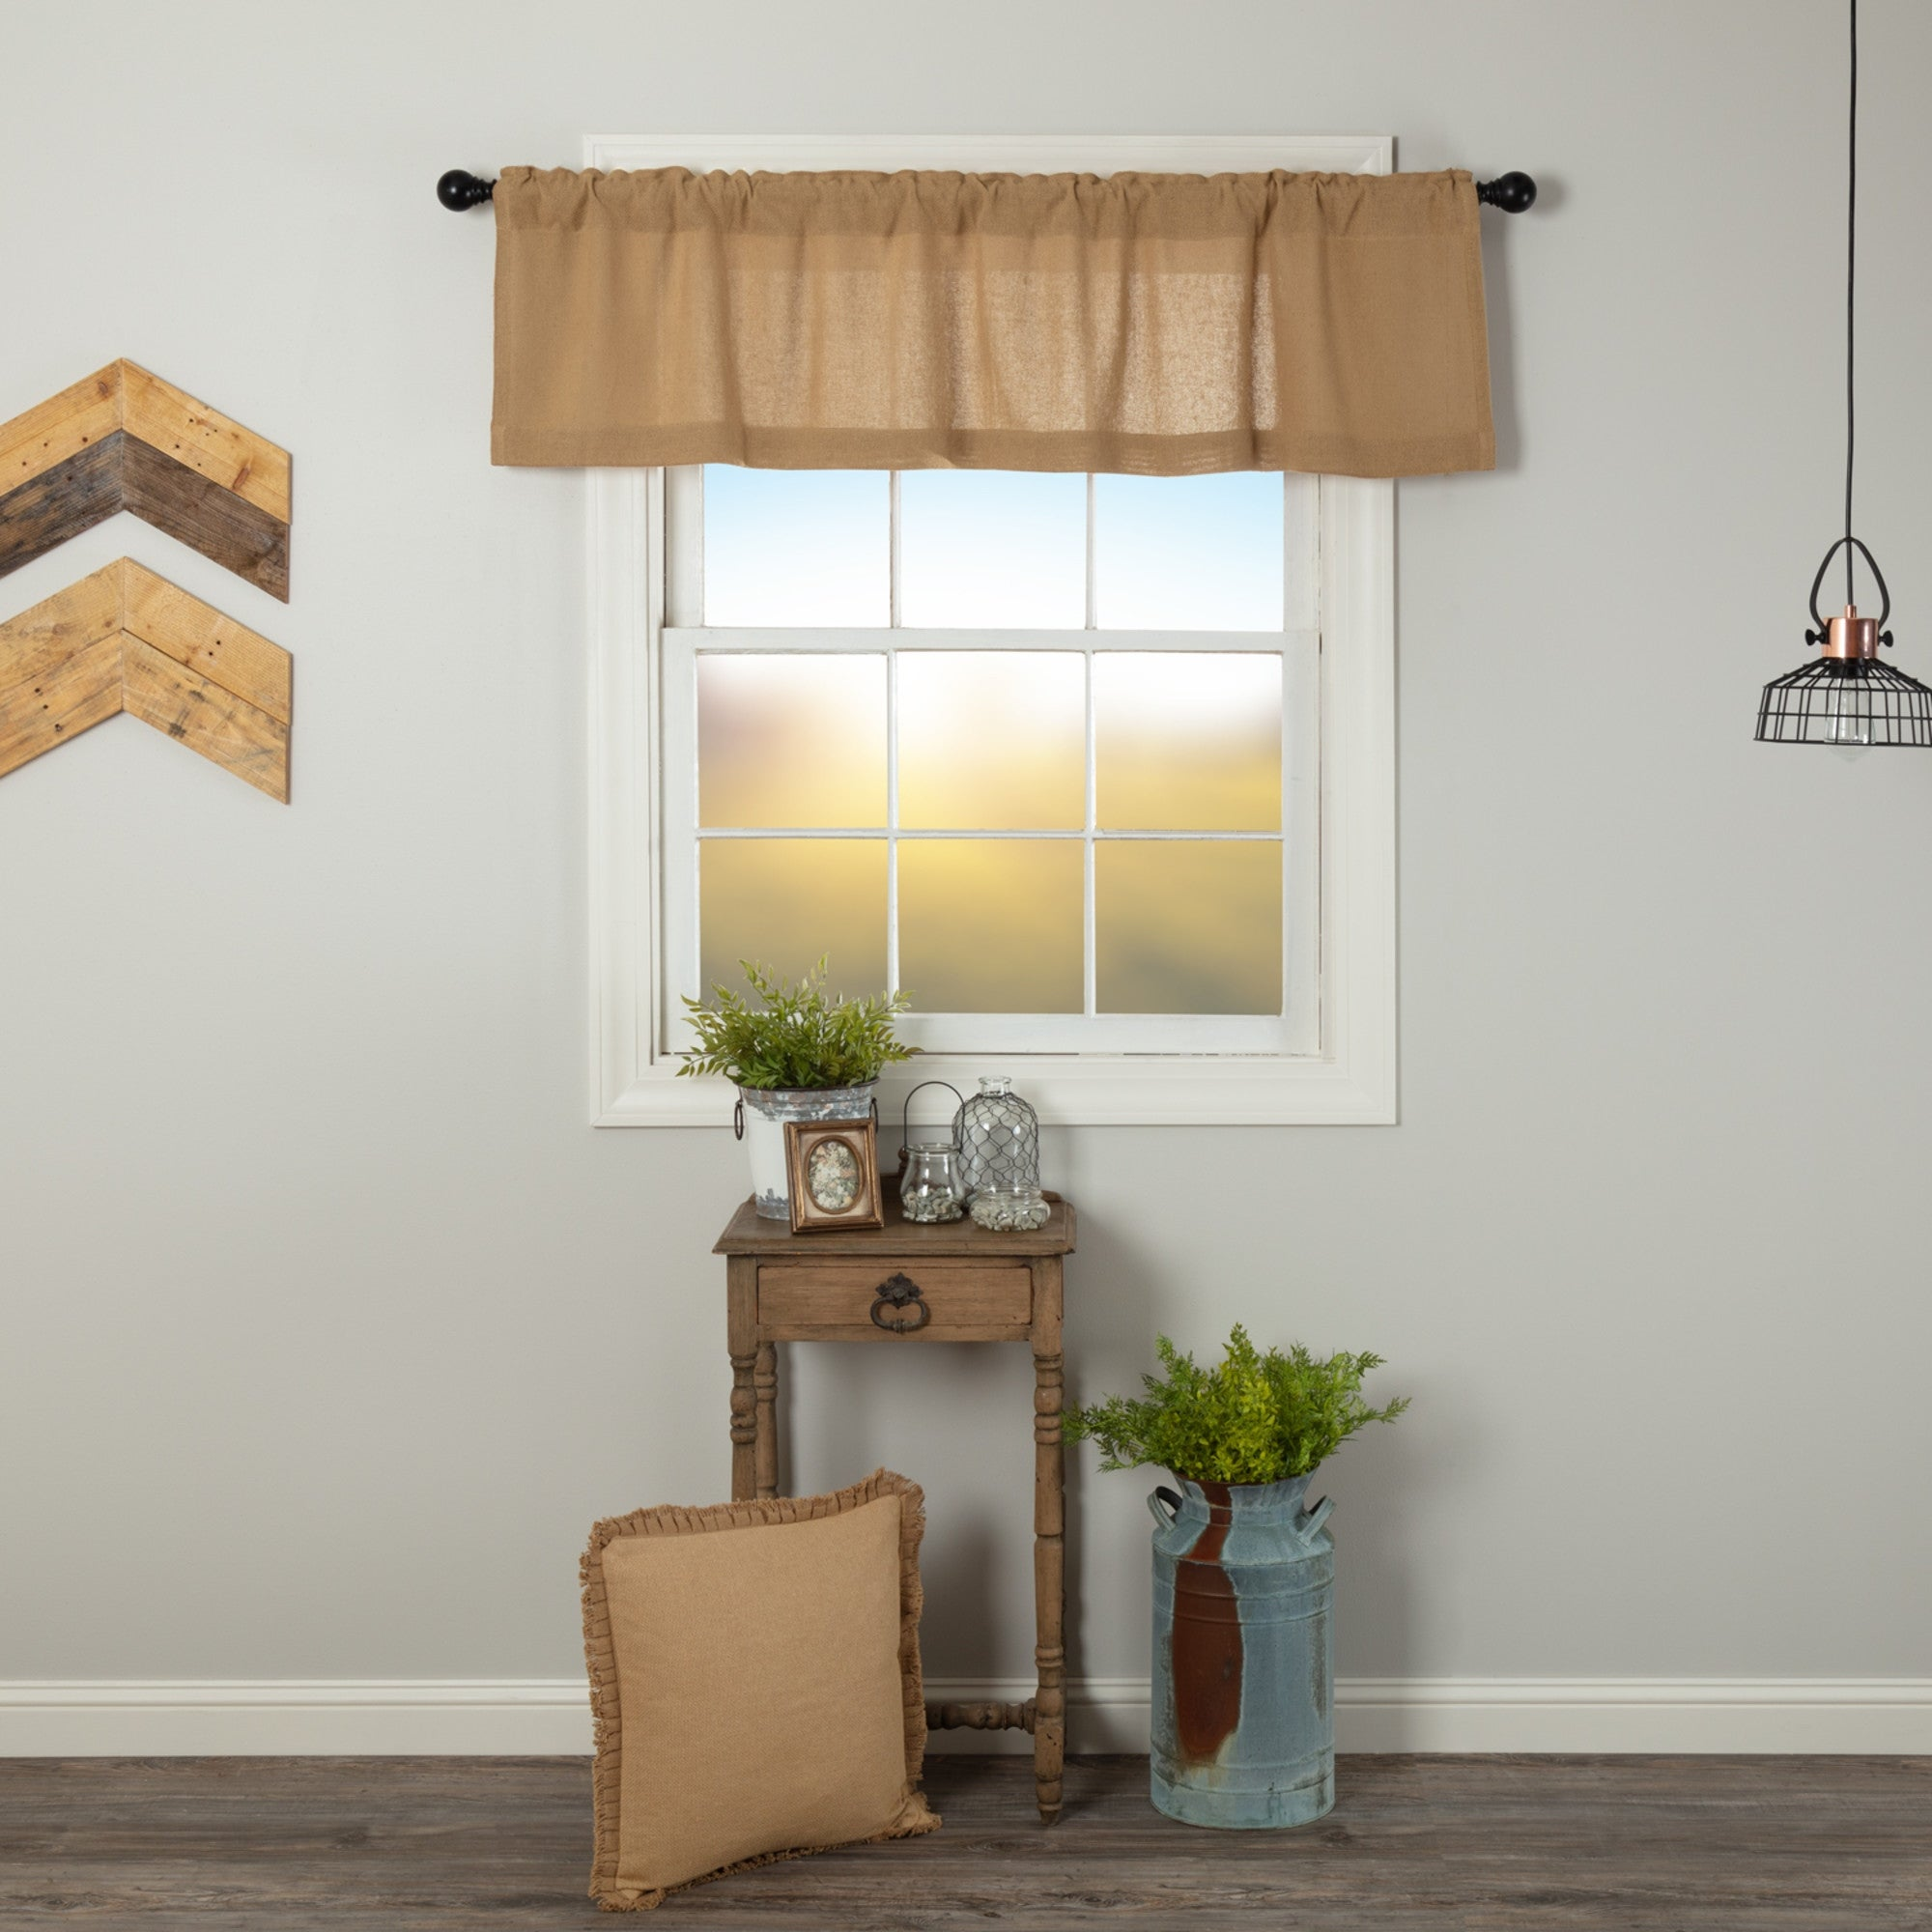 Farmhouse Kitchen Curtains Vhc Cotton Burlap Valance Rod Pocket Solid Color On Sale Overstock 17925685